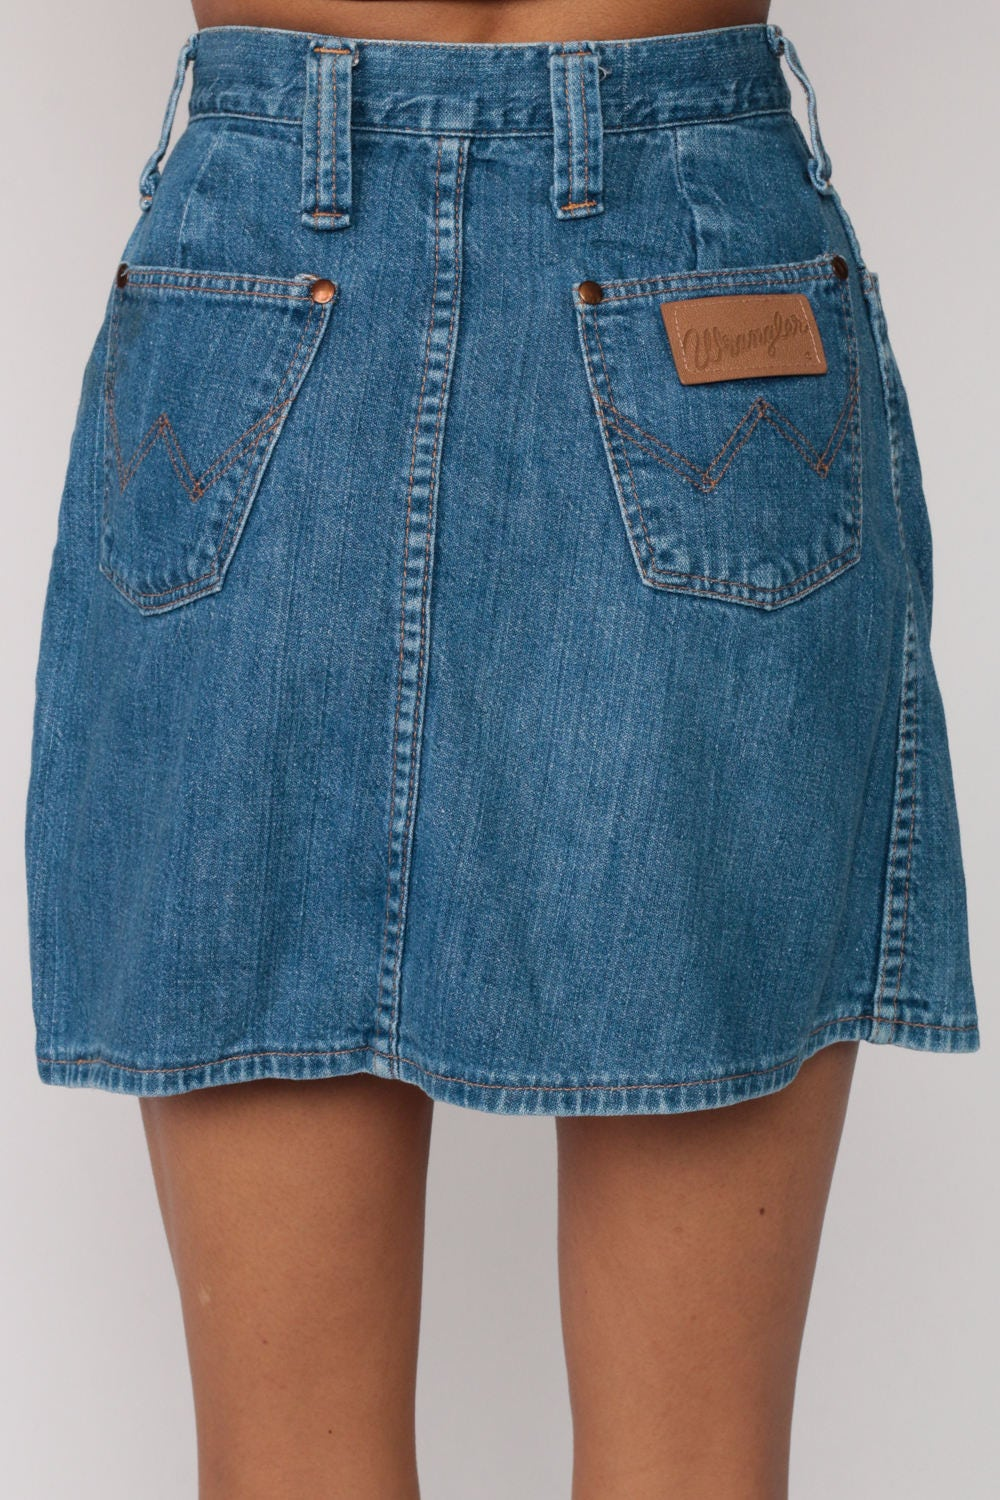 FOR SALES AND PROMOTIONS FOLLOW US HERE Instagram Shopexile Facebook Denim Mini Skirt